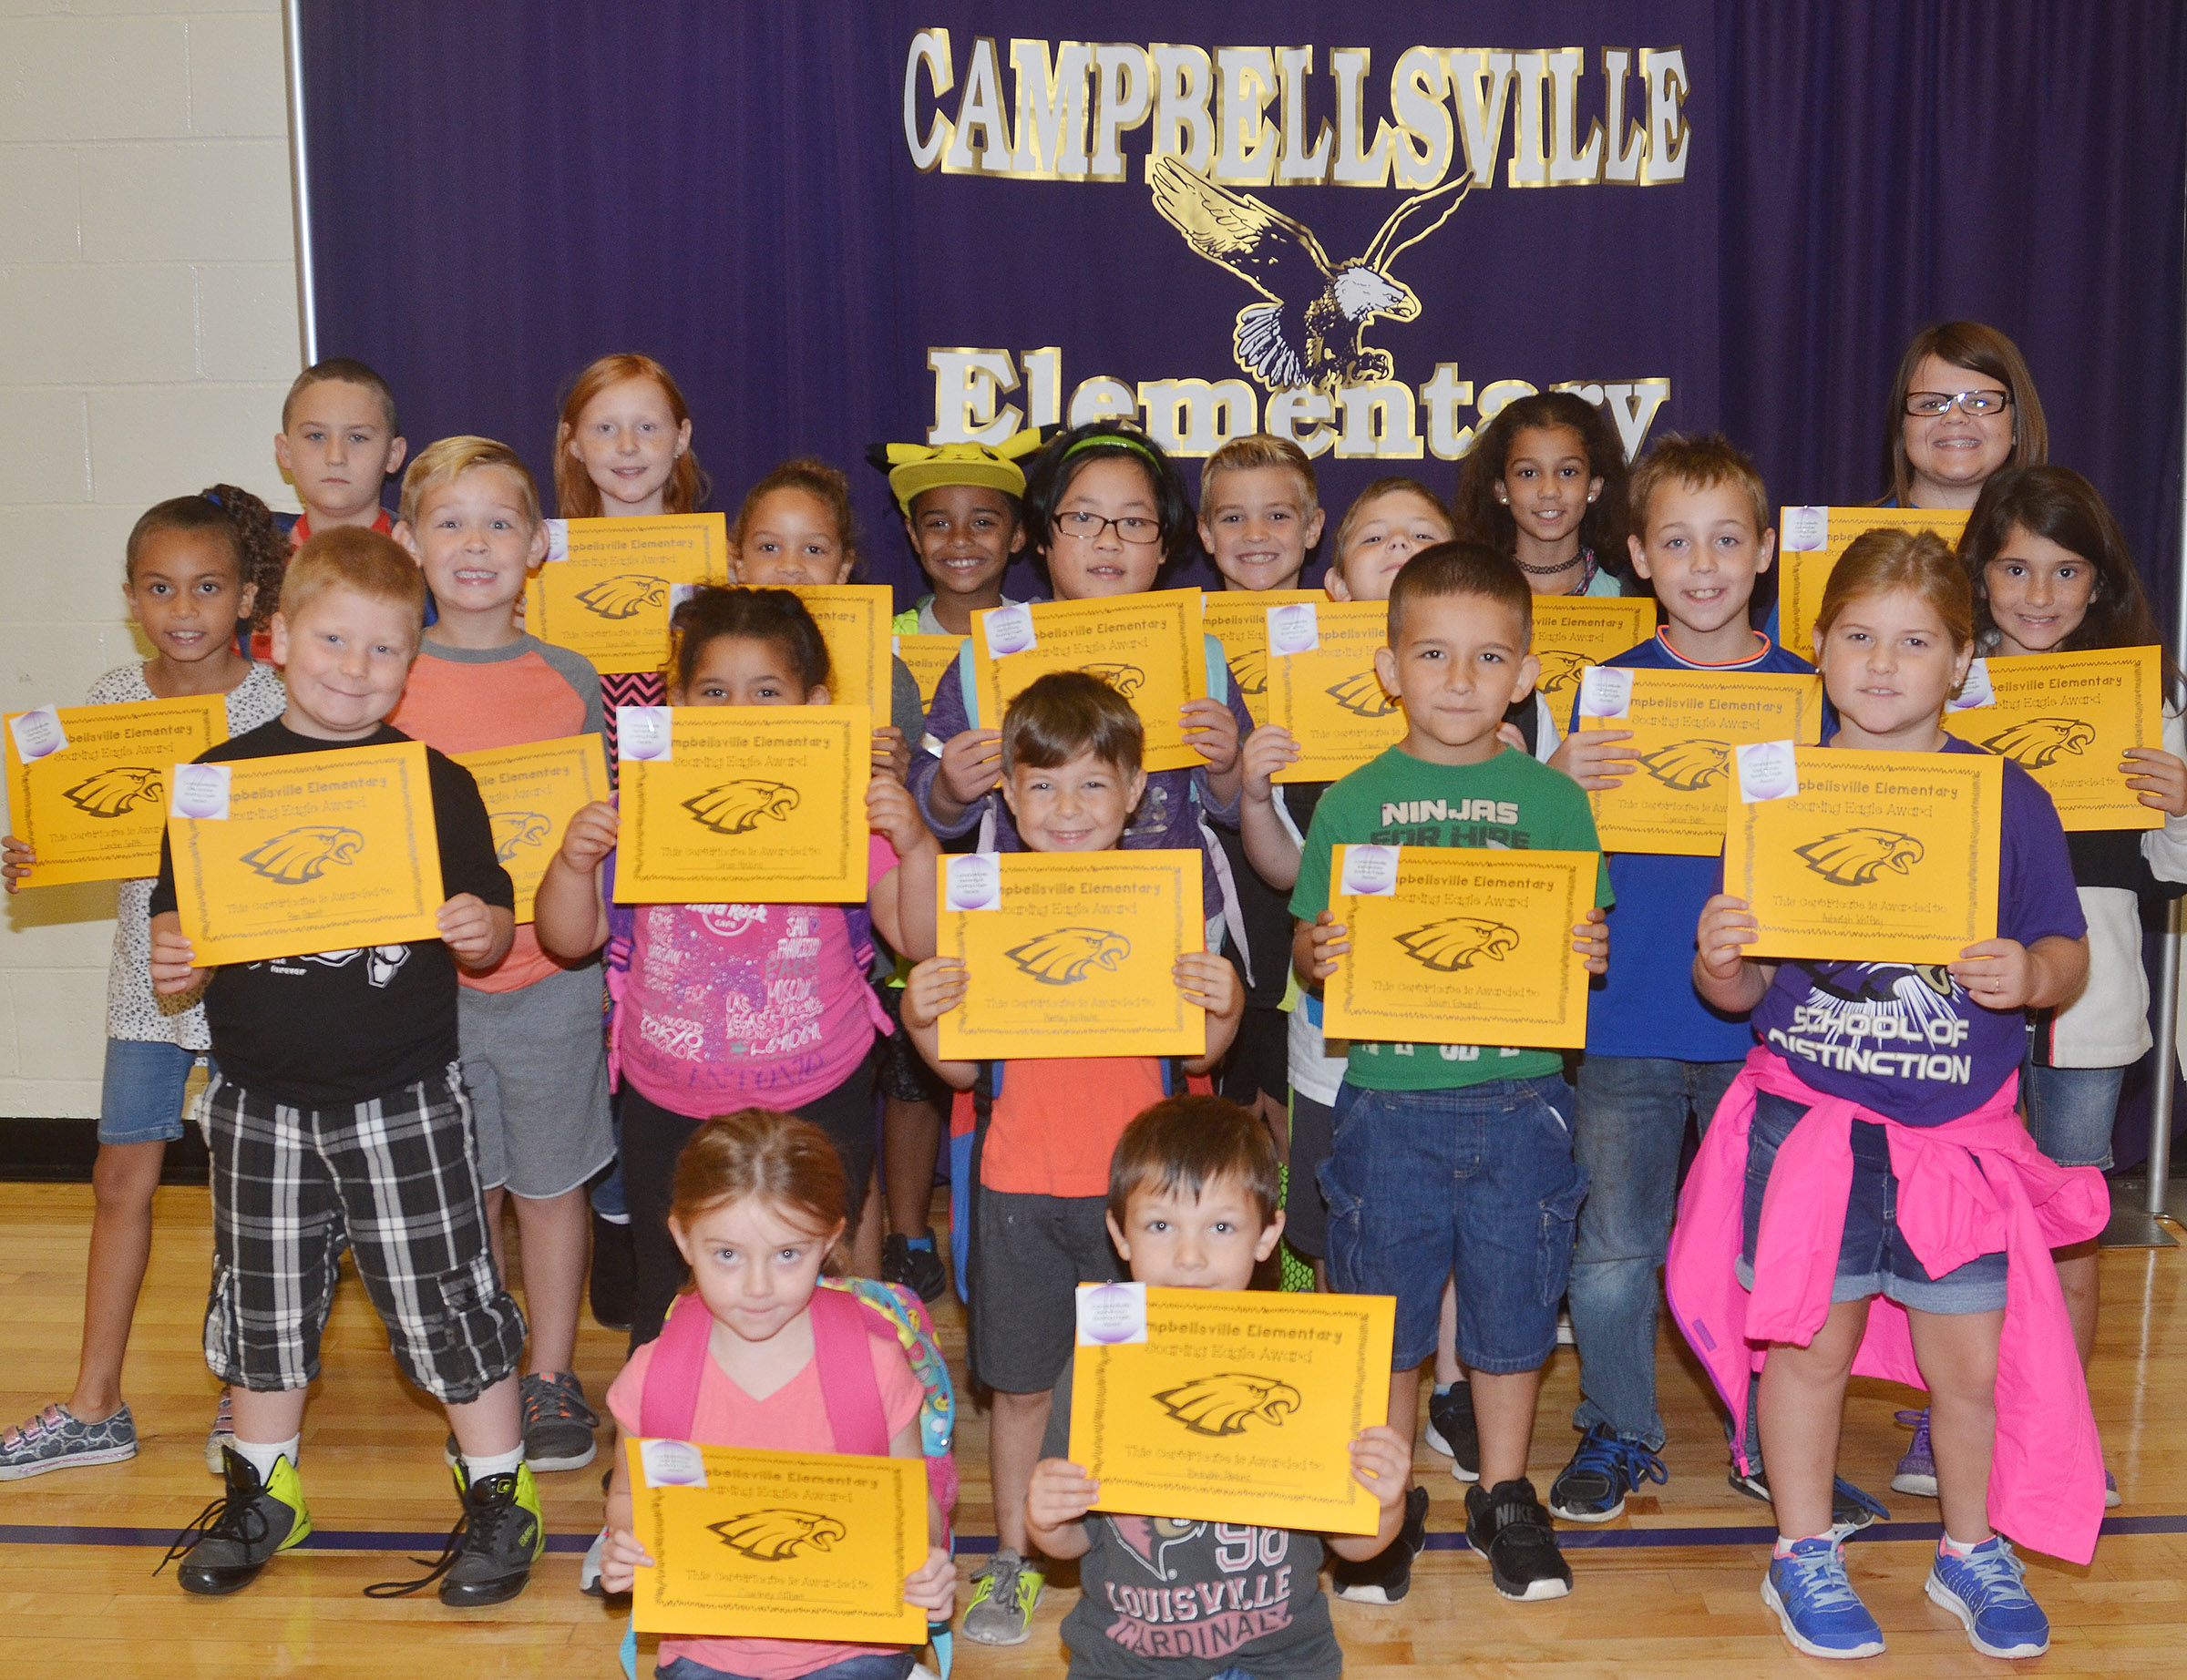 From left, front, are kindergarteners Courtney Gilbert and Brayden Perkins. Second row, second-grader Ben Parrott, kindergarteners Tatum Hoskins and Bentley Wilhoite and first-graders Josiah Edwards and Aubreigh Knifley. Third row, second-grader Londyn Smith, first-grader John Hagan Newton, second-grader Keiava Thompson, first-grader Vicky Li, third-grader Seamus Huber, fifth-grader Spencer Bates and third-grader Ava Taylor. Back, third-graders Carson Ford, Nora Harris and Keylan Strong, second-grader Dax Gray and fifth-graders Mackenzie Negron and Keeley Dicken. Absent from the photo is fourth-grader Cash Cowan.